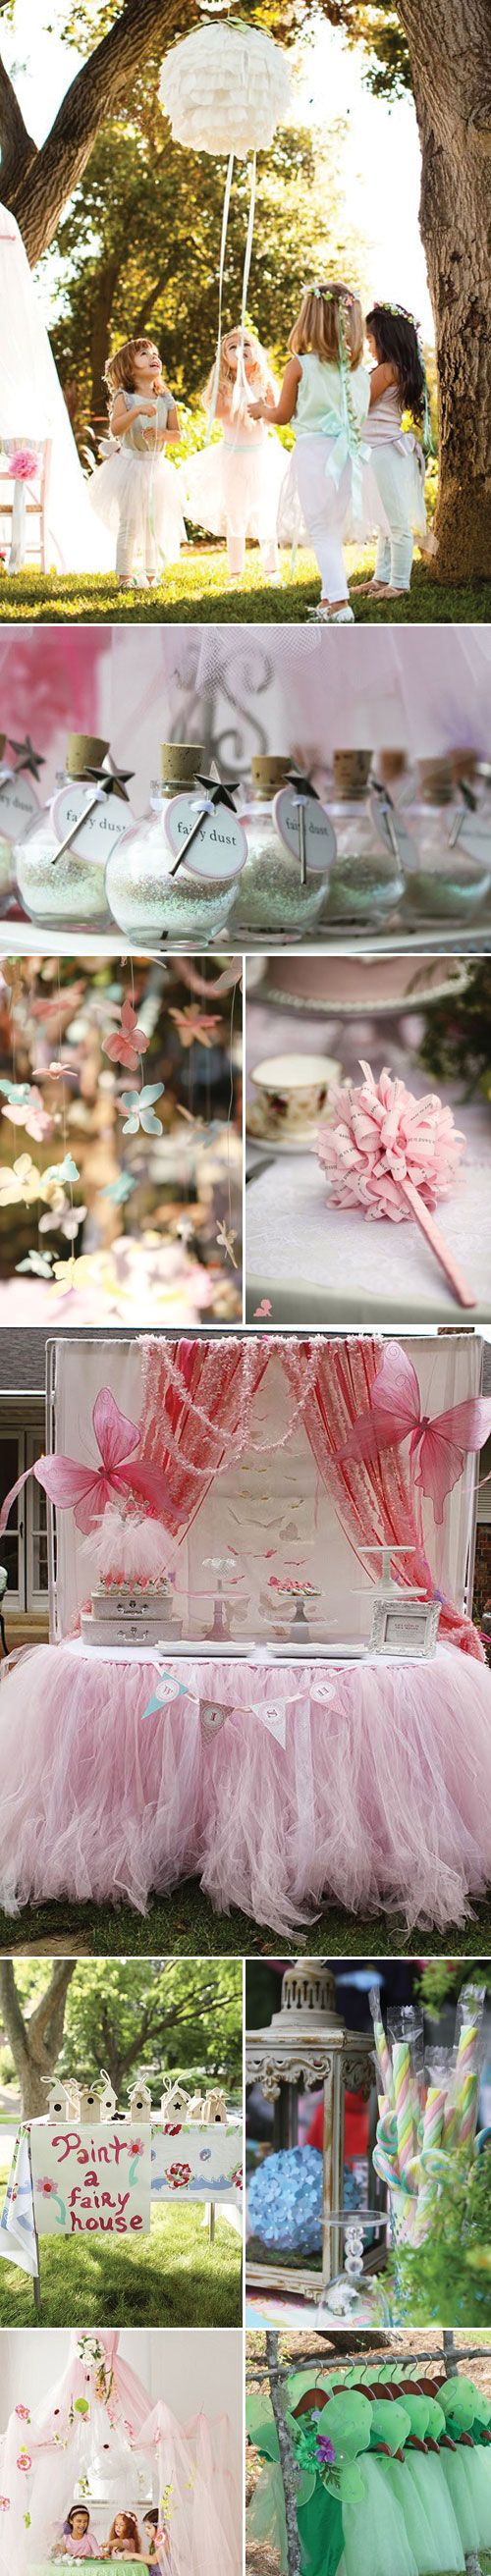 Most amazing kid's birthday idea! Fairy Birthday Party: Little Girls, Birthday Parties, Fairies Birthday, Fairies Houses, Parties Ideas, Fairies Parties, Princesses Parties, Girls Parties, Birthday Ideas